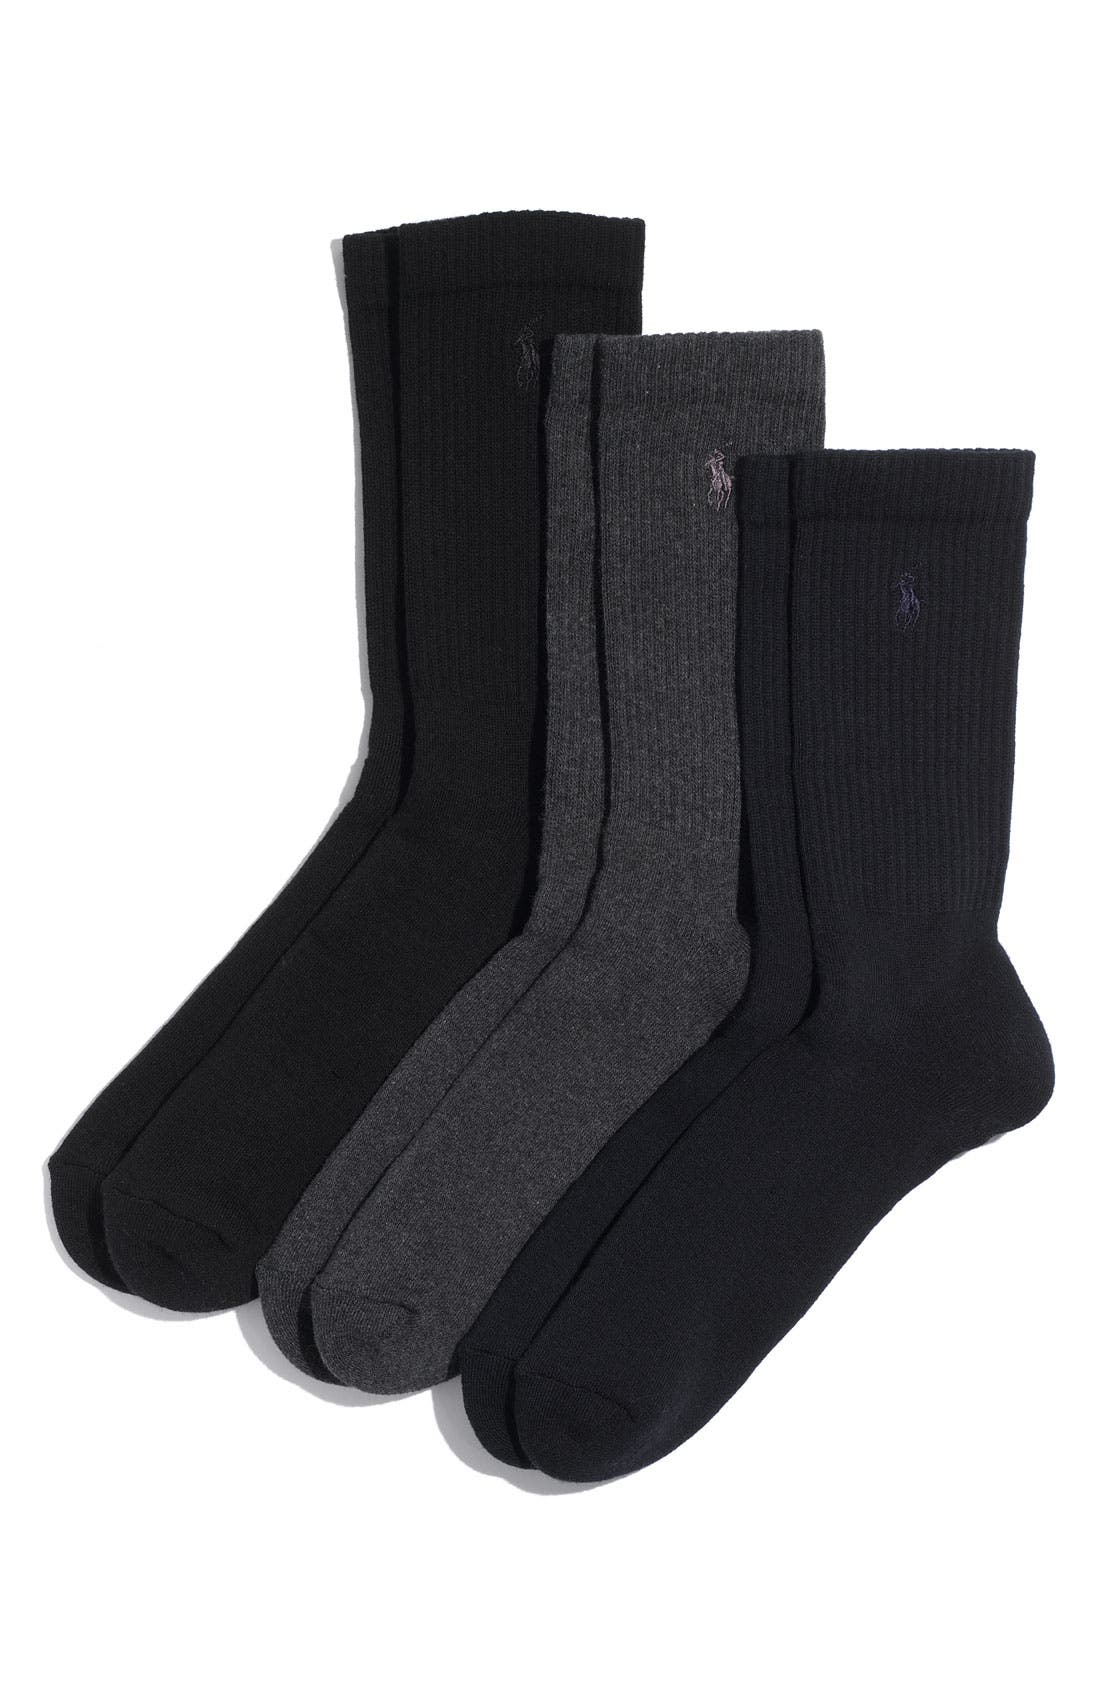 3-Pack Crew Socks,                         Main,                         color, ASSORTED